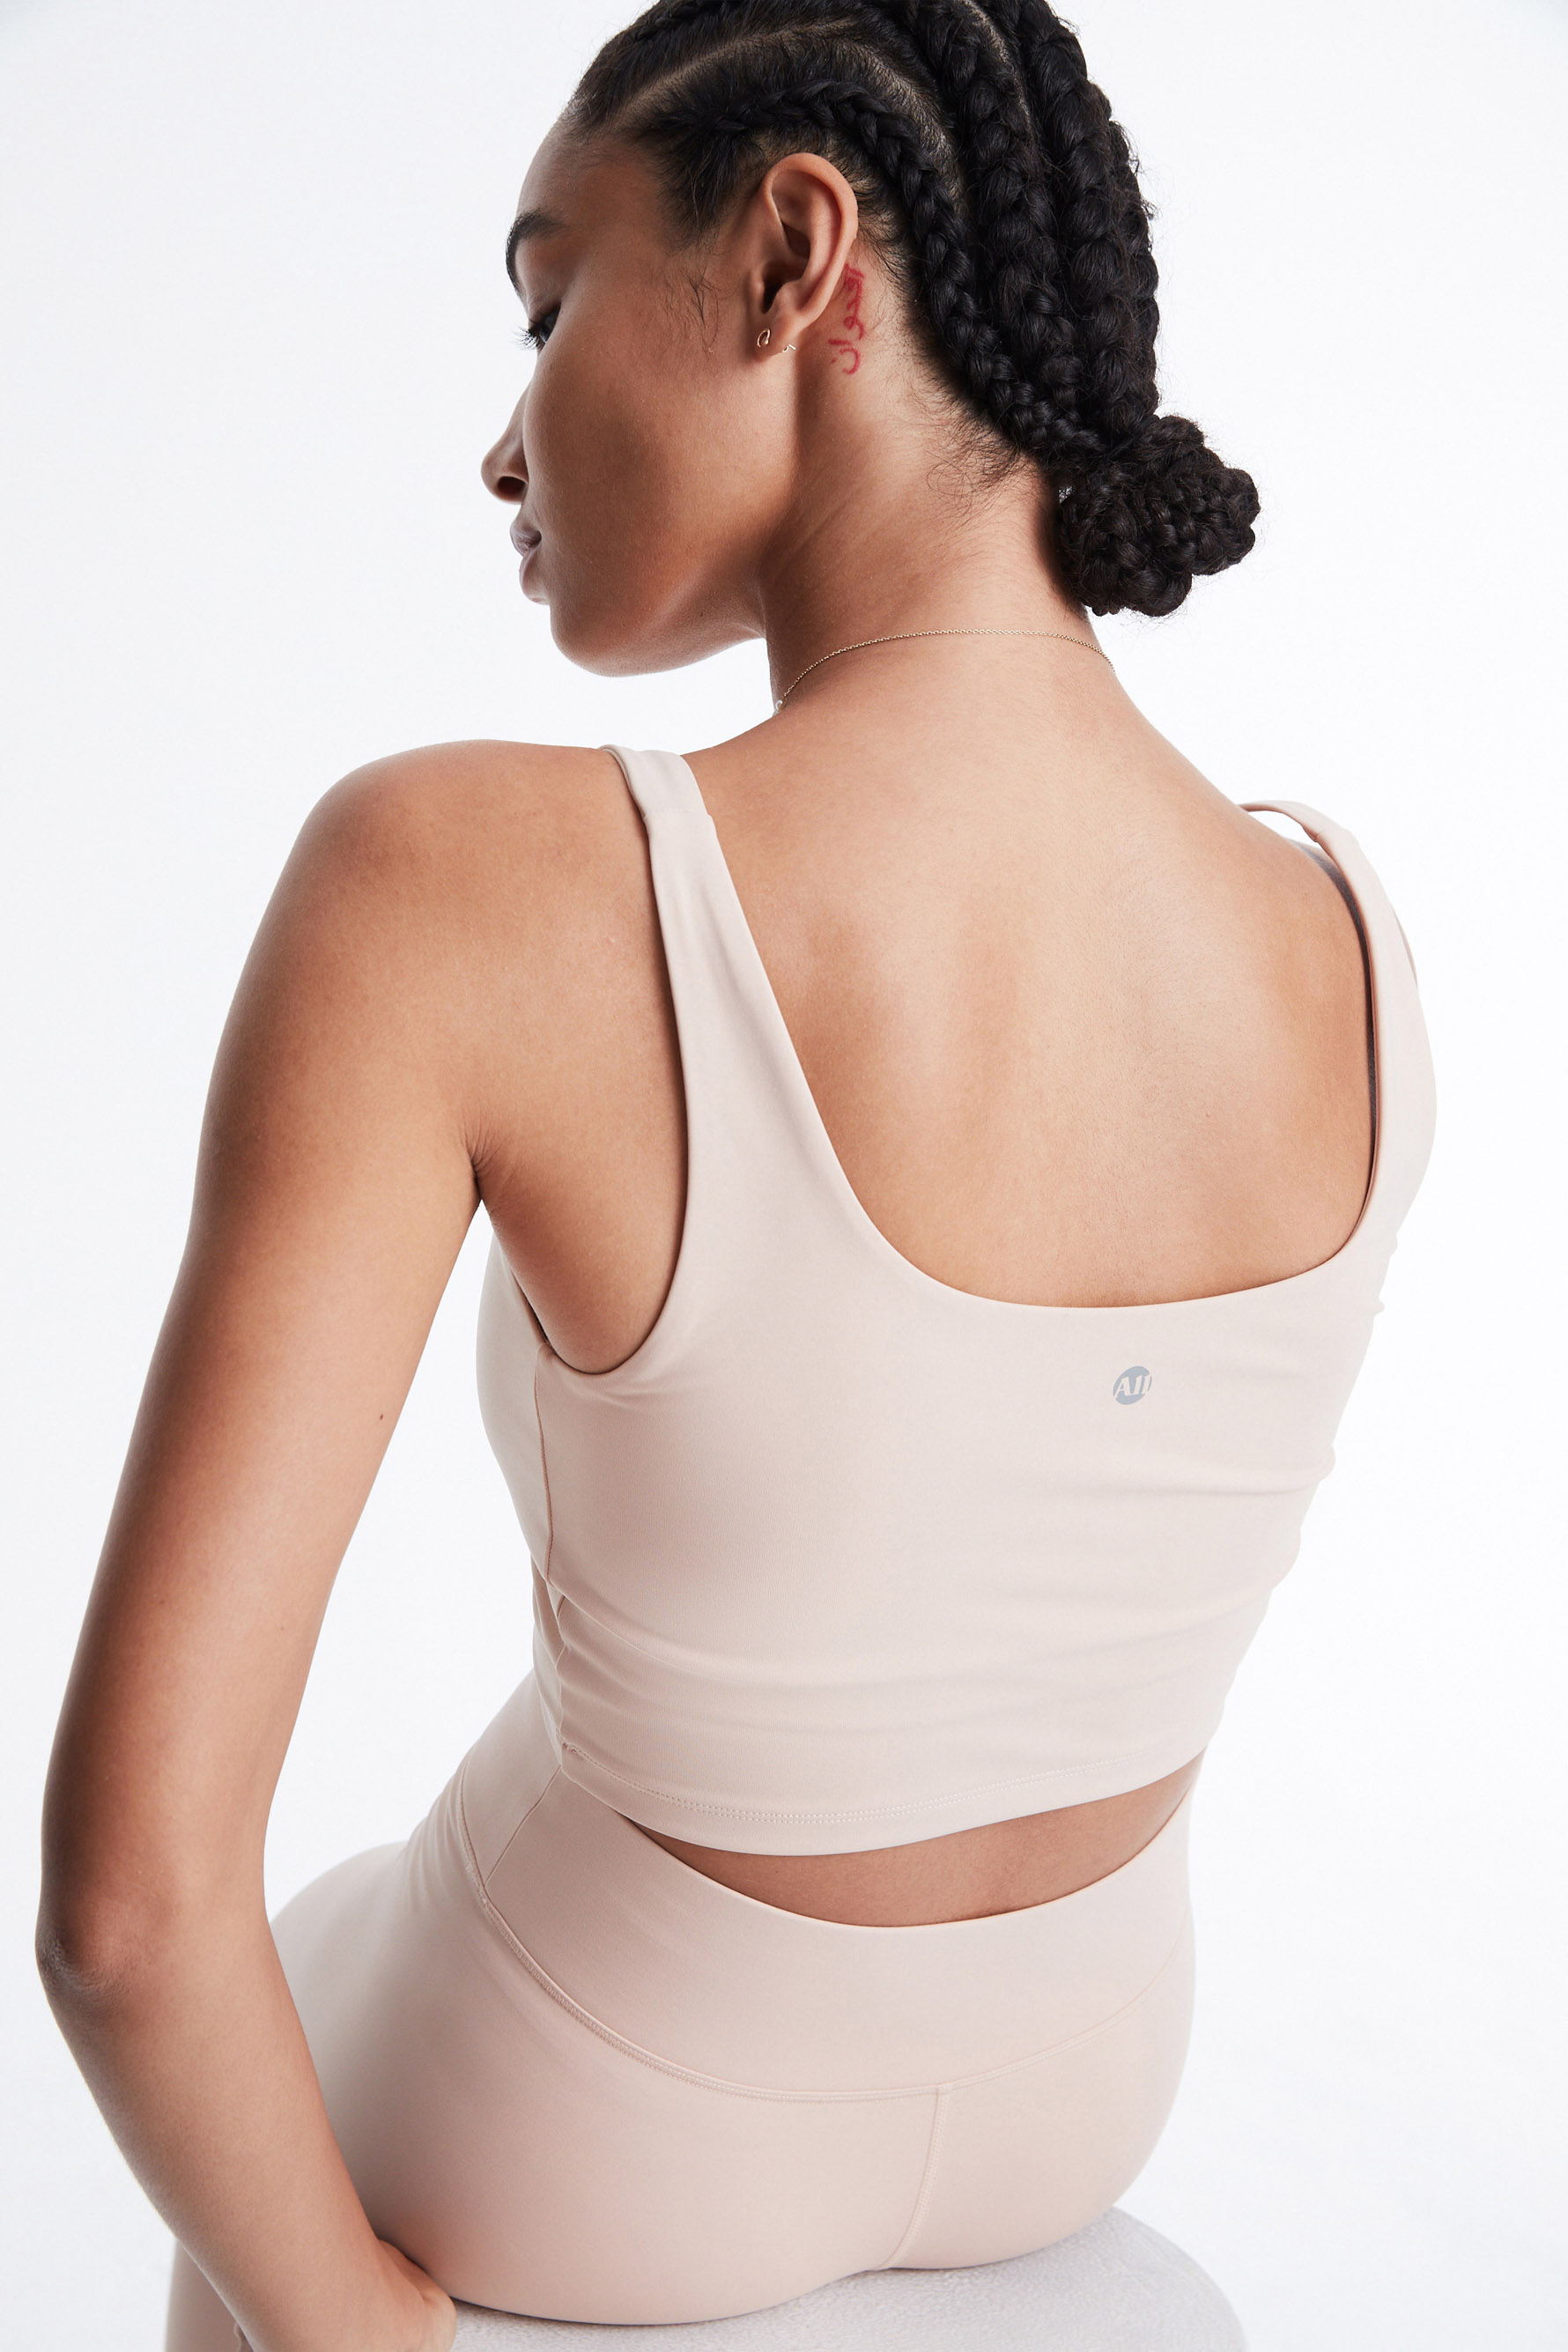 ALL_ACCESS_AA202100_BRS17004_BRA_LEGGINGS_BARELY_THERE_1078 - Christine Bender.jpg